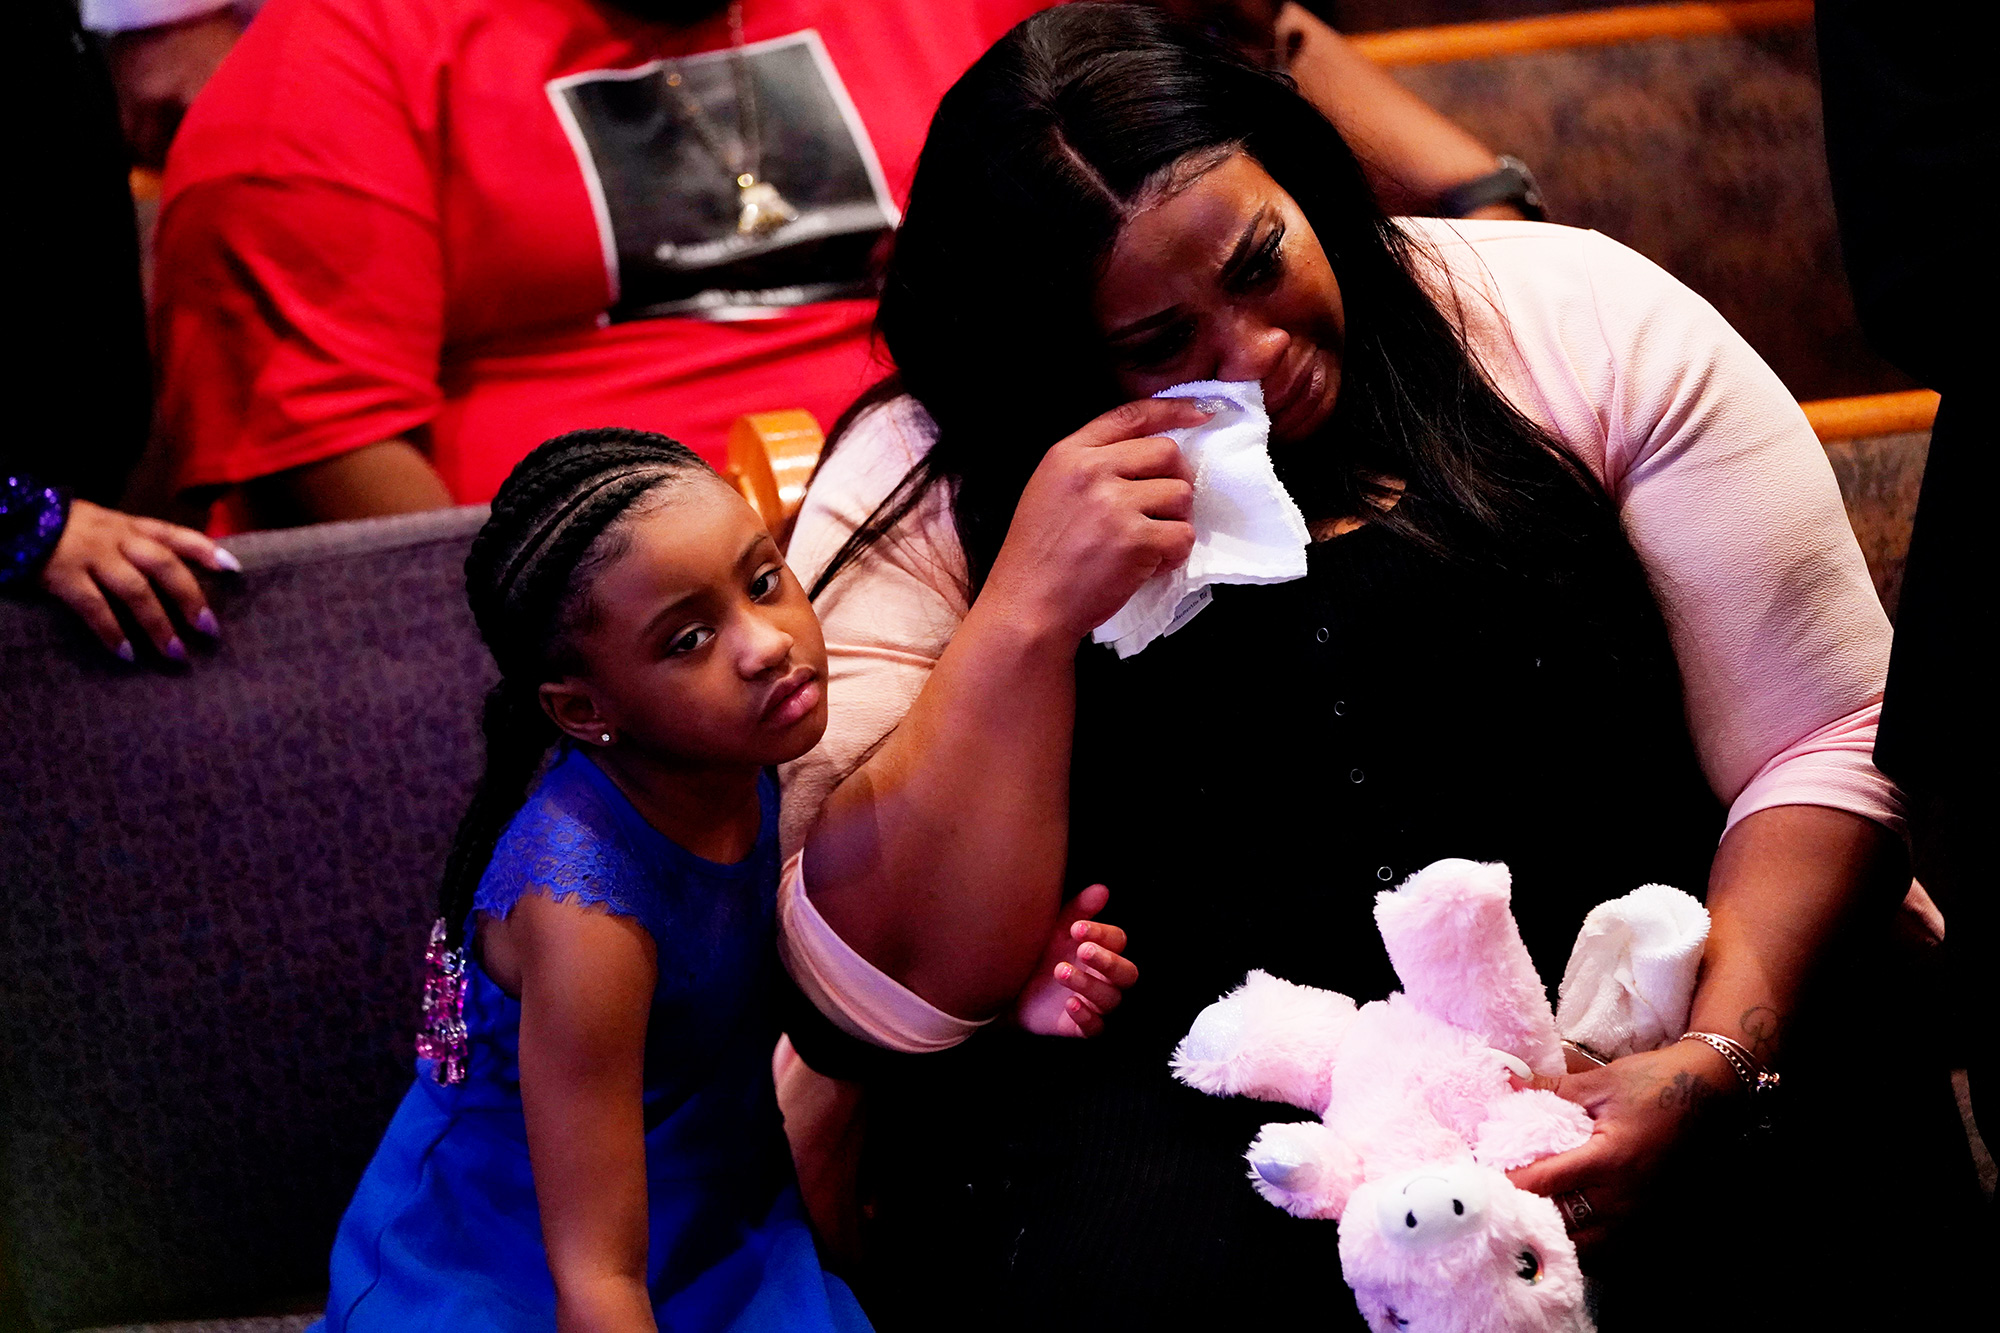 Roxie Washington holds Gianna Floyd, the daughter of George Floyd as they attend the funeral service for George Floyd at The Fountain of Praise church Tuesday, June 9, 2020, in Houston